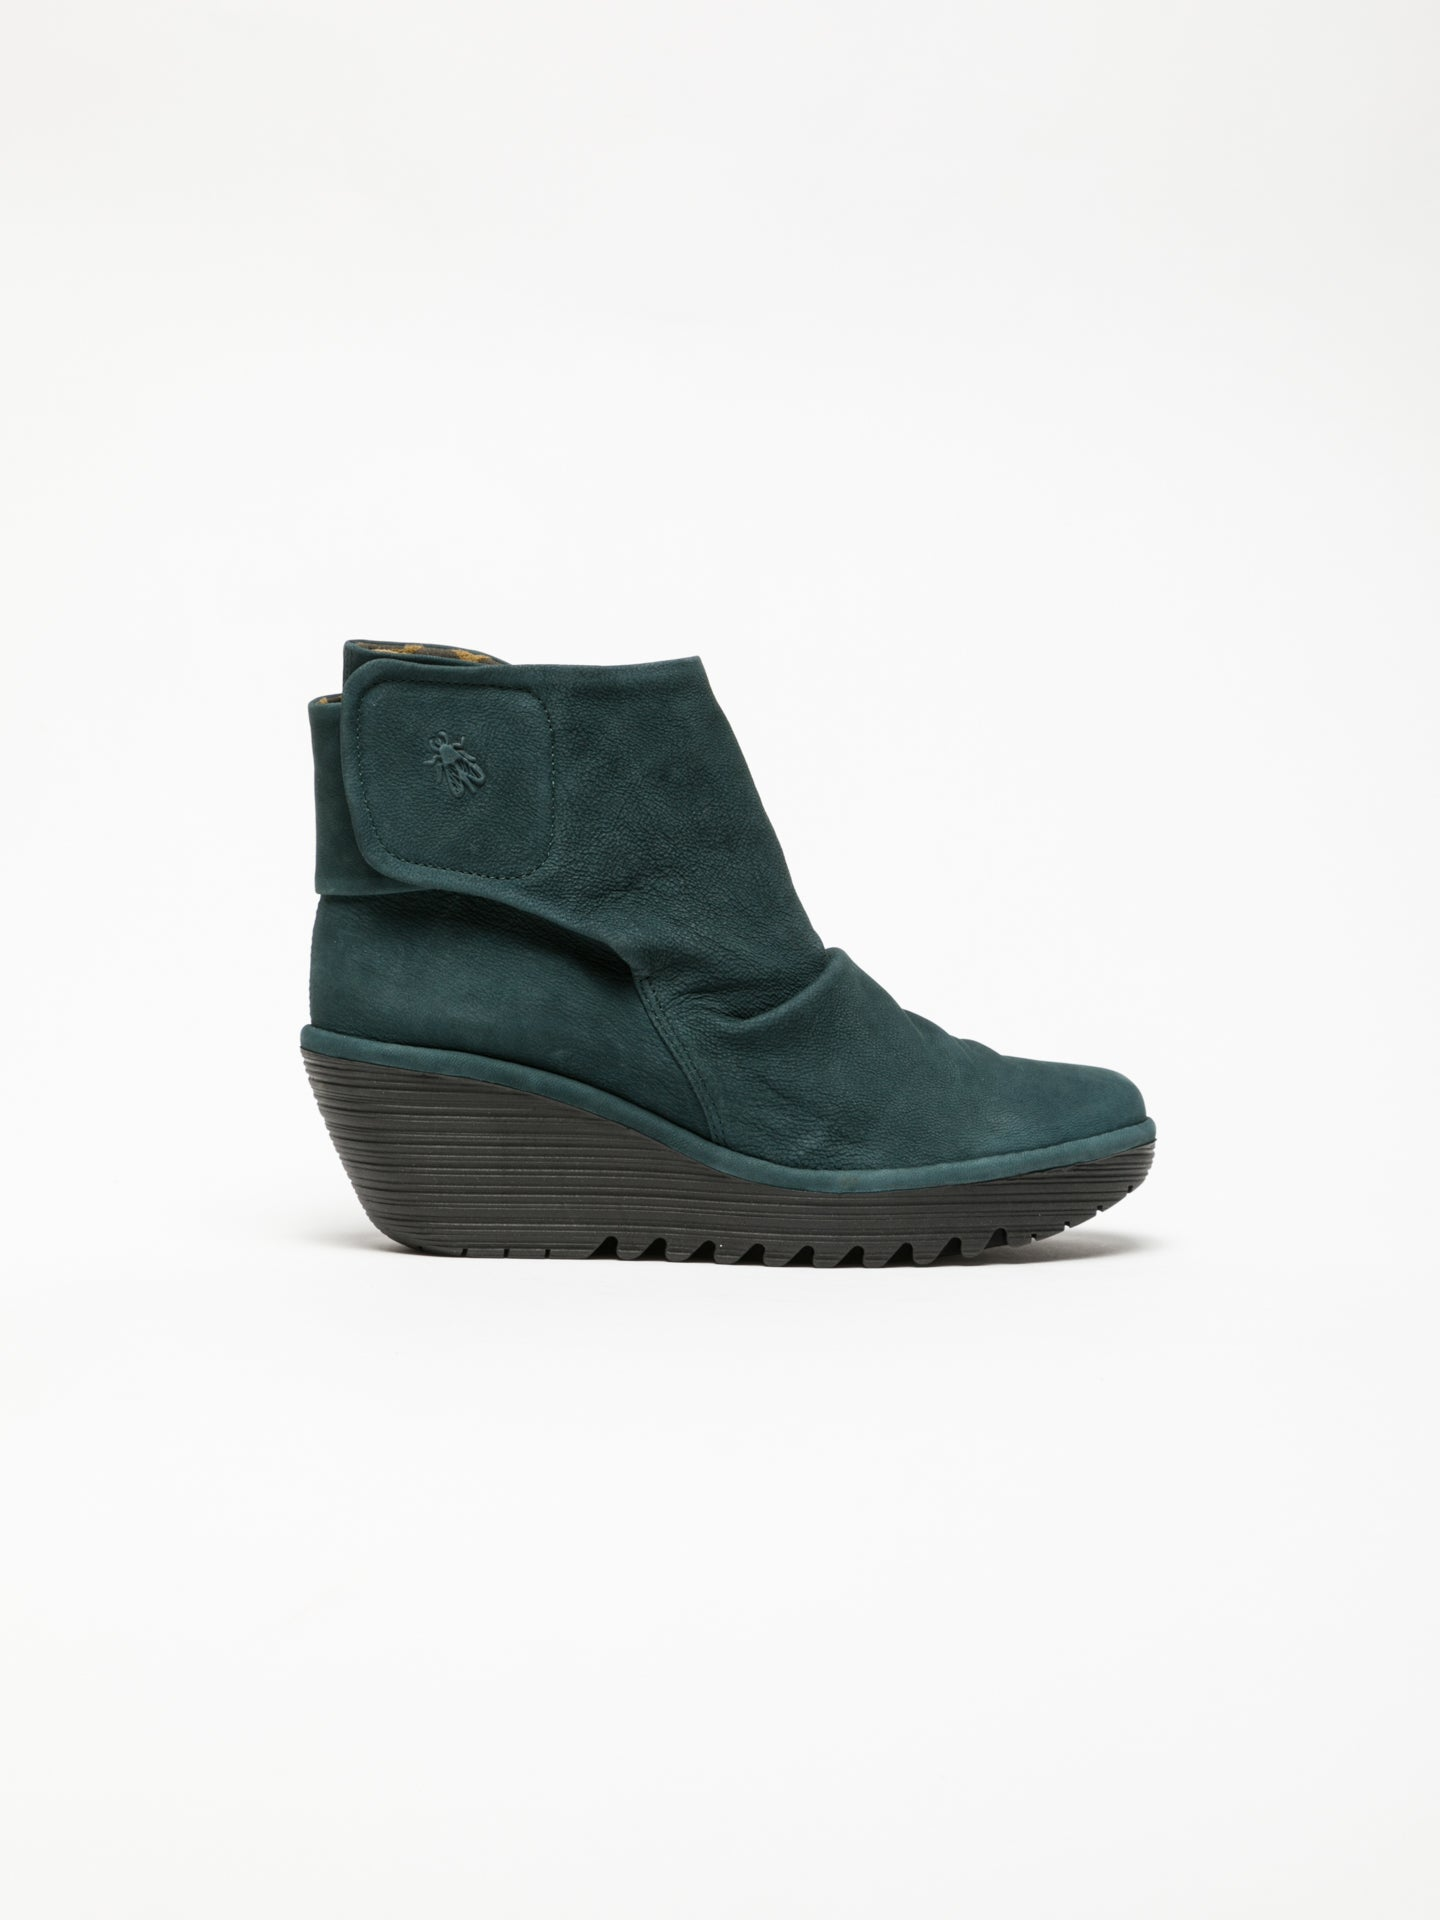 Fly London Green Velcro Ankle Boots